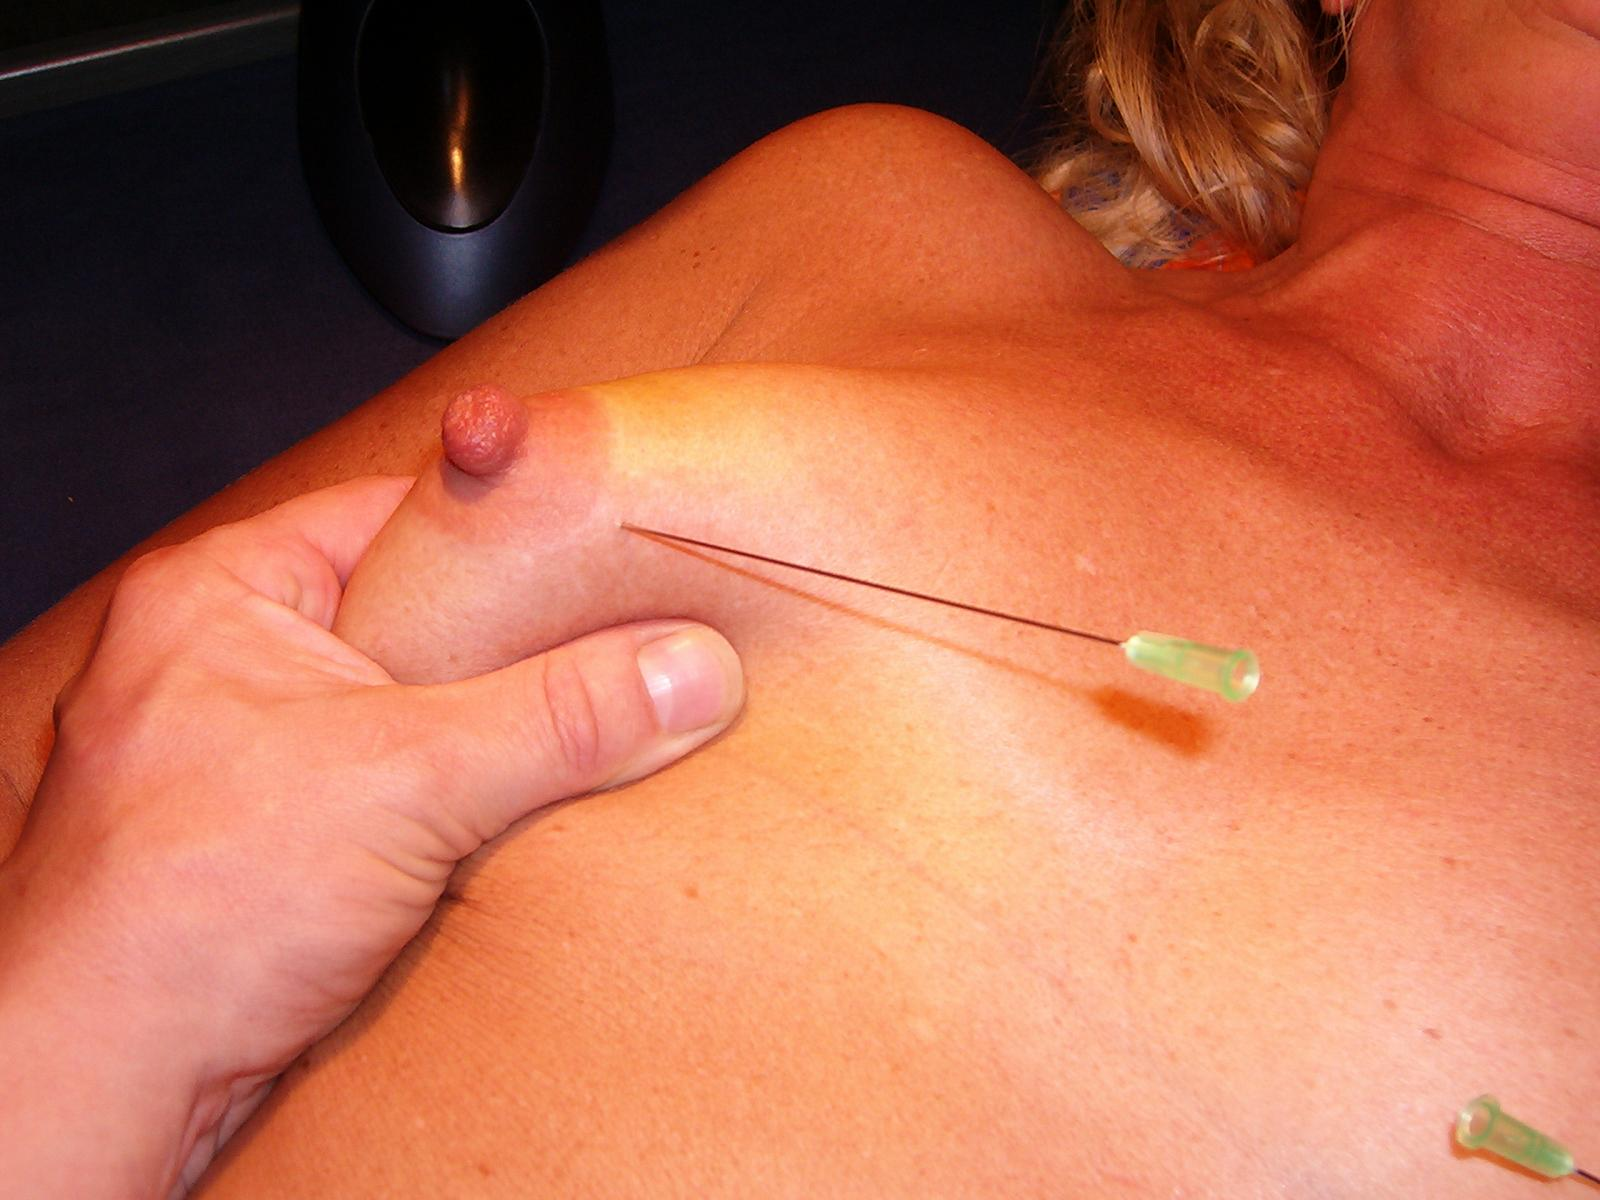 Breast Torture With Needles - HEAVY-R